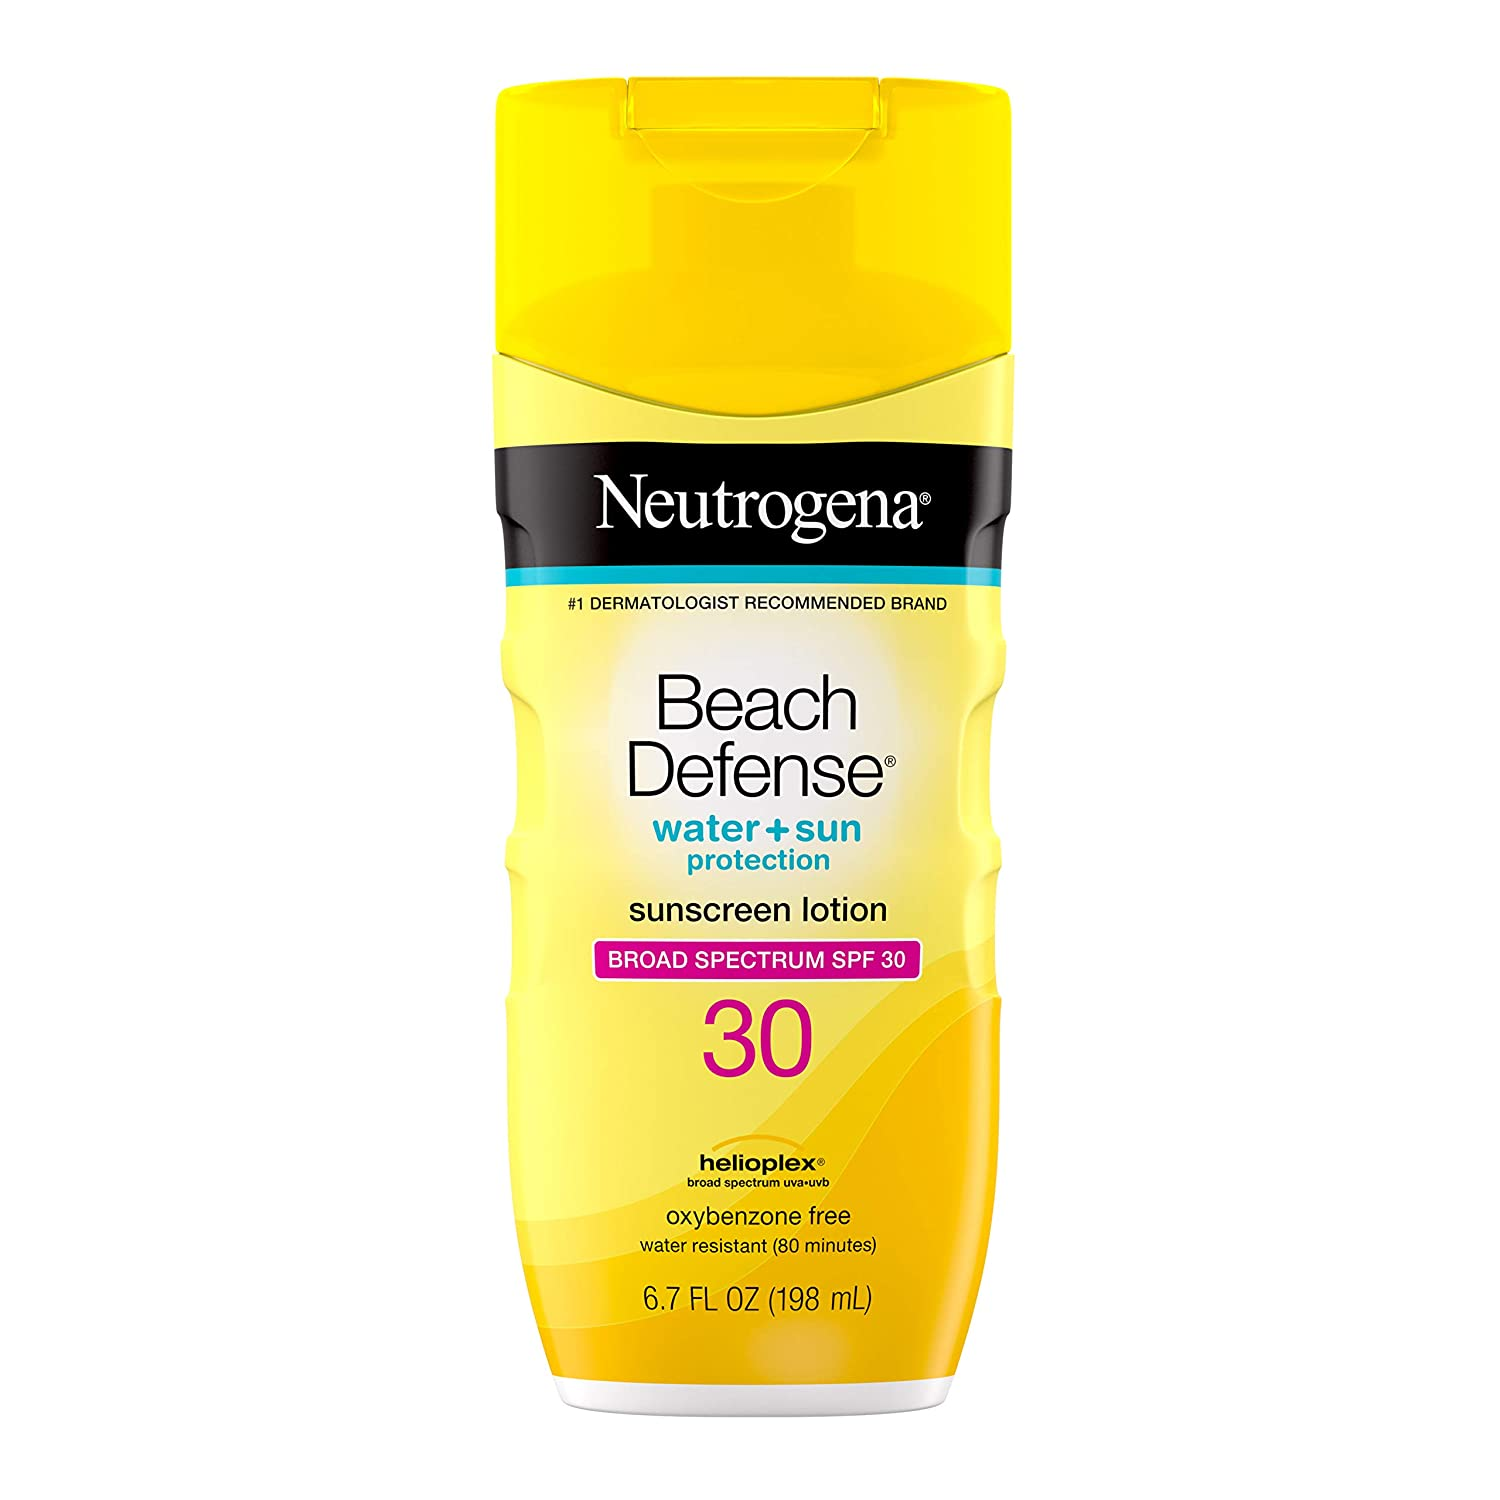 Neutrogena Beach Defense Water-Resistant Body Sunscreen Lotion with Broad Spectrum SPF 30, Oil-Free, PABA-Free, Oxybenzone-Free & Fast-Absorbing Sun Protection Against UVA/UVB Rays, 6.7 fl. oz